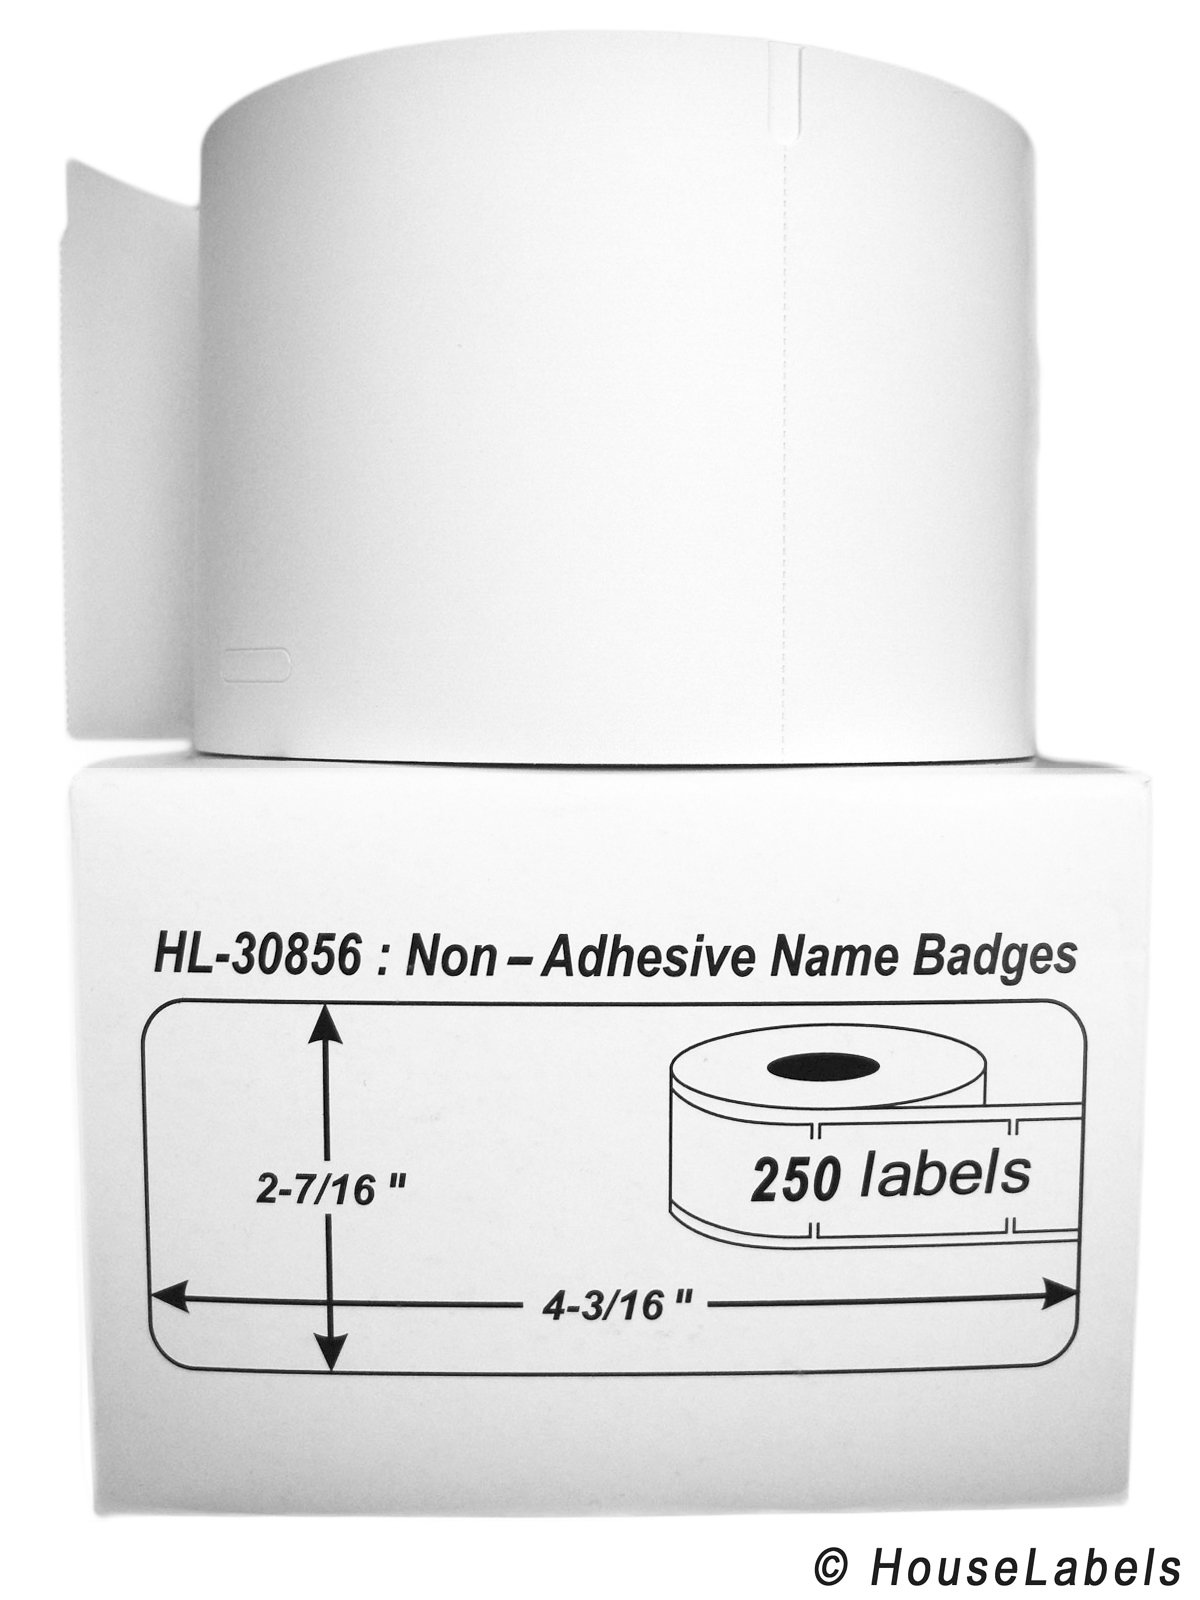 4 Rolls; 250 Labels per Roll of DYMO-Compatible 30856 Non-Adhesive Name Badges (2-7/16'' x 4-3/16'') - BPA Free! by HouseLabels